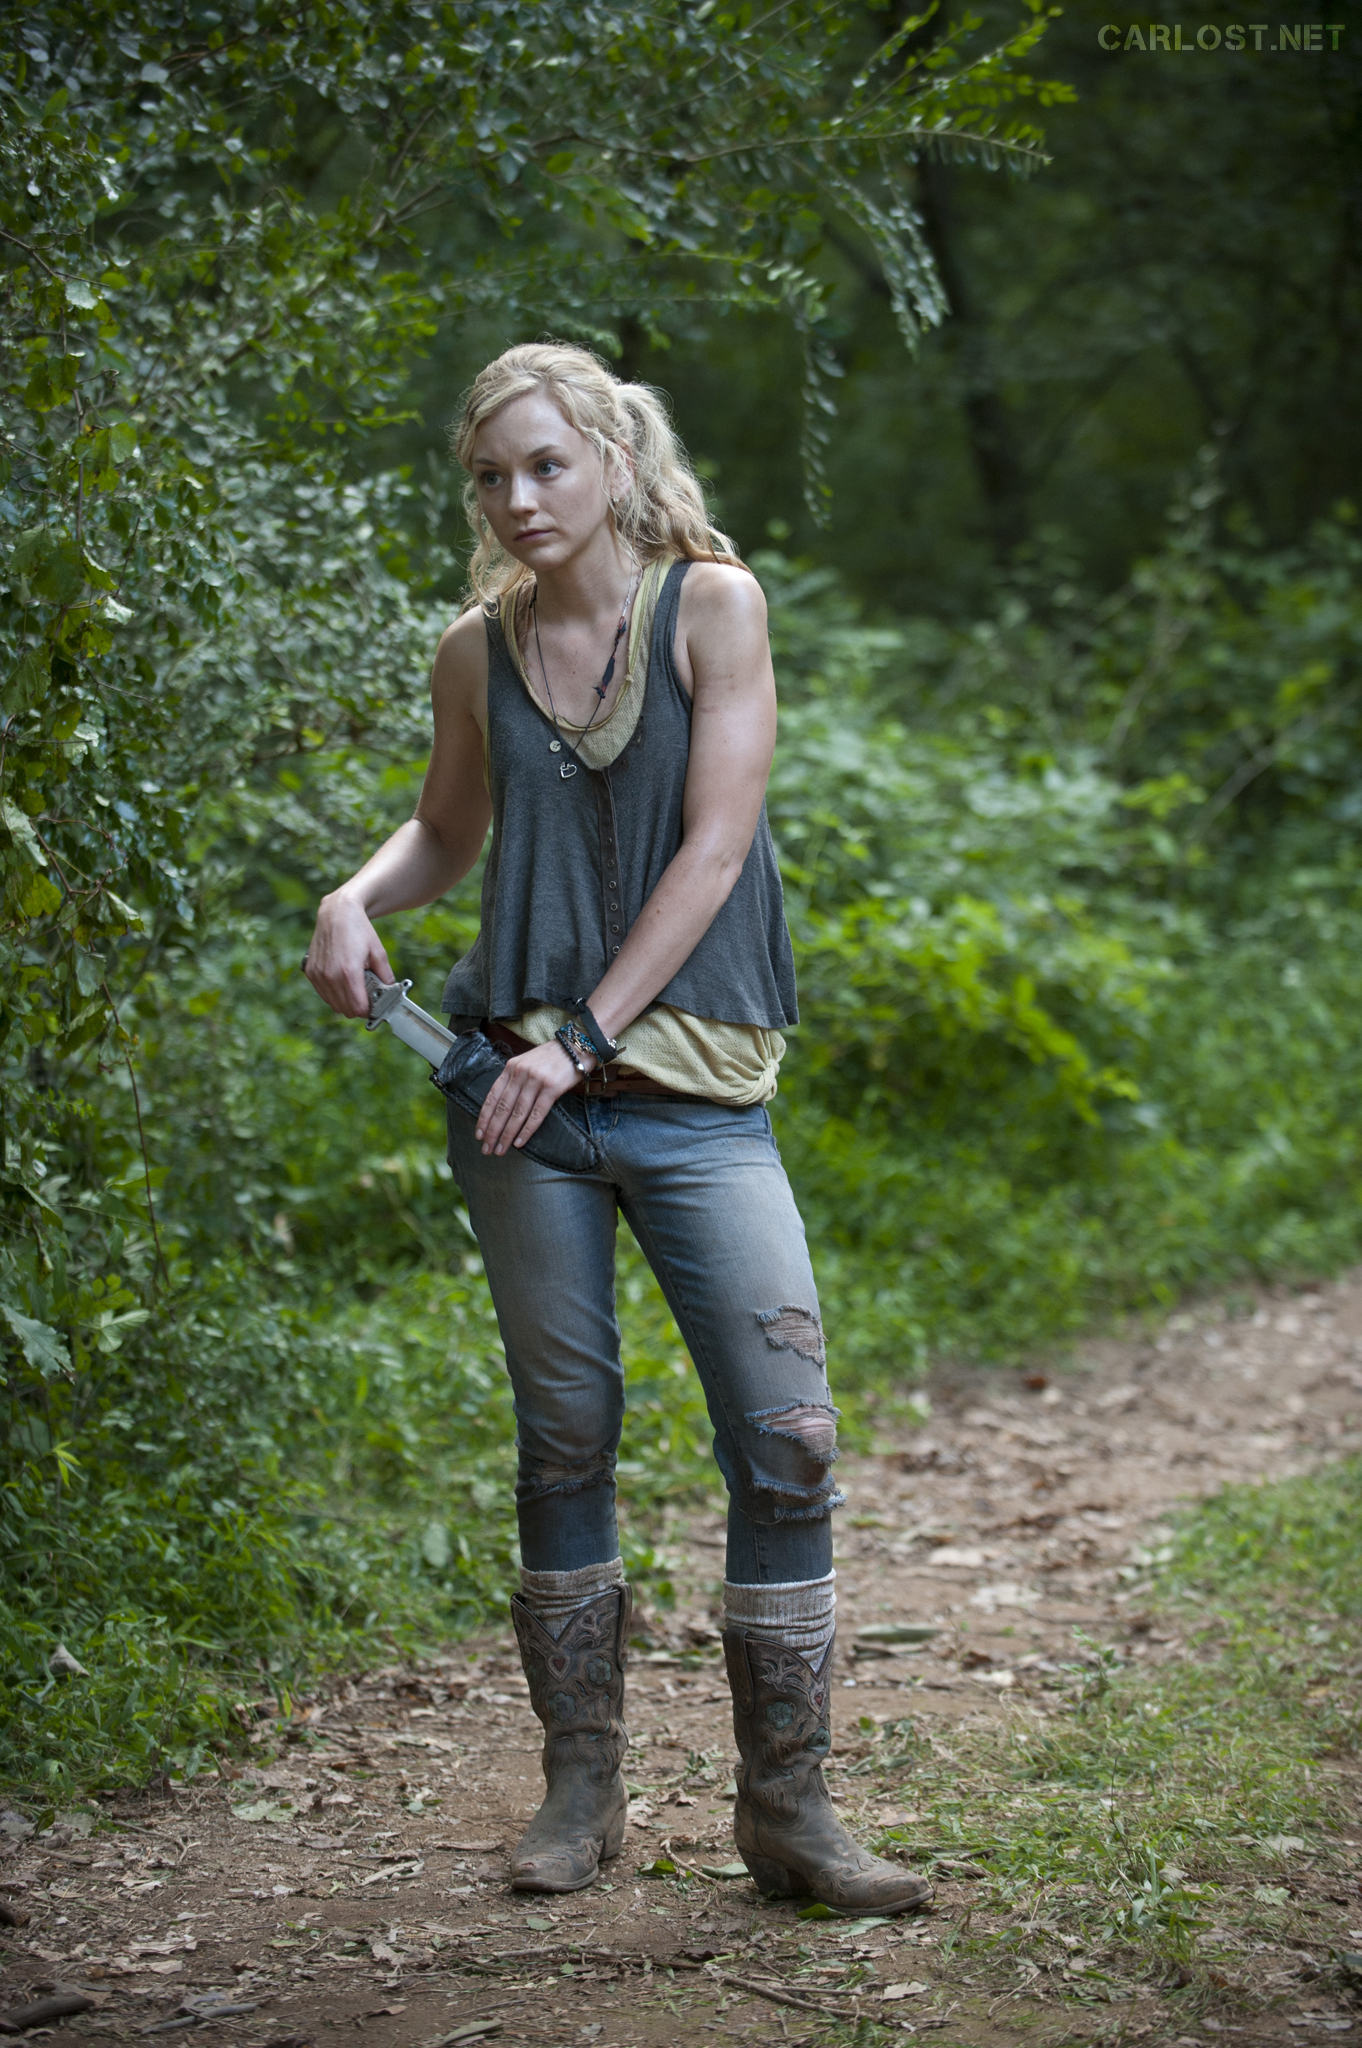 Petite Outfit Ideas: Outfit Inspired by Beth from Walking Dead ...